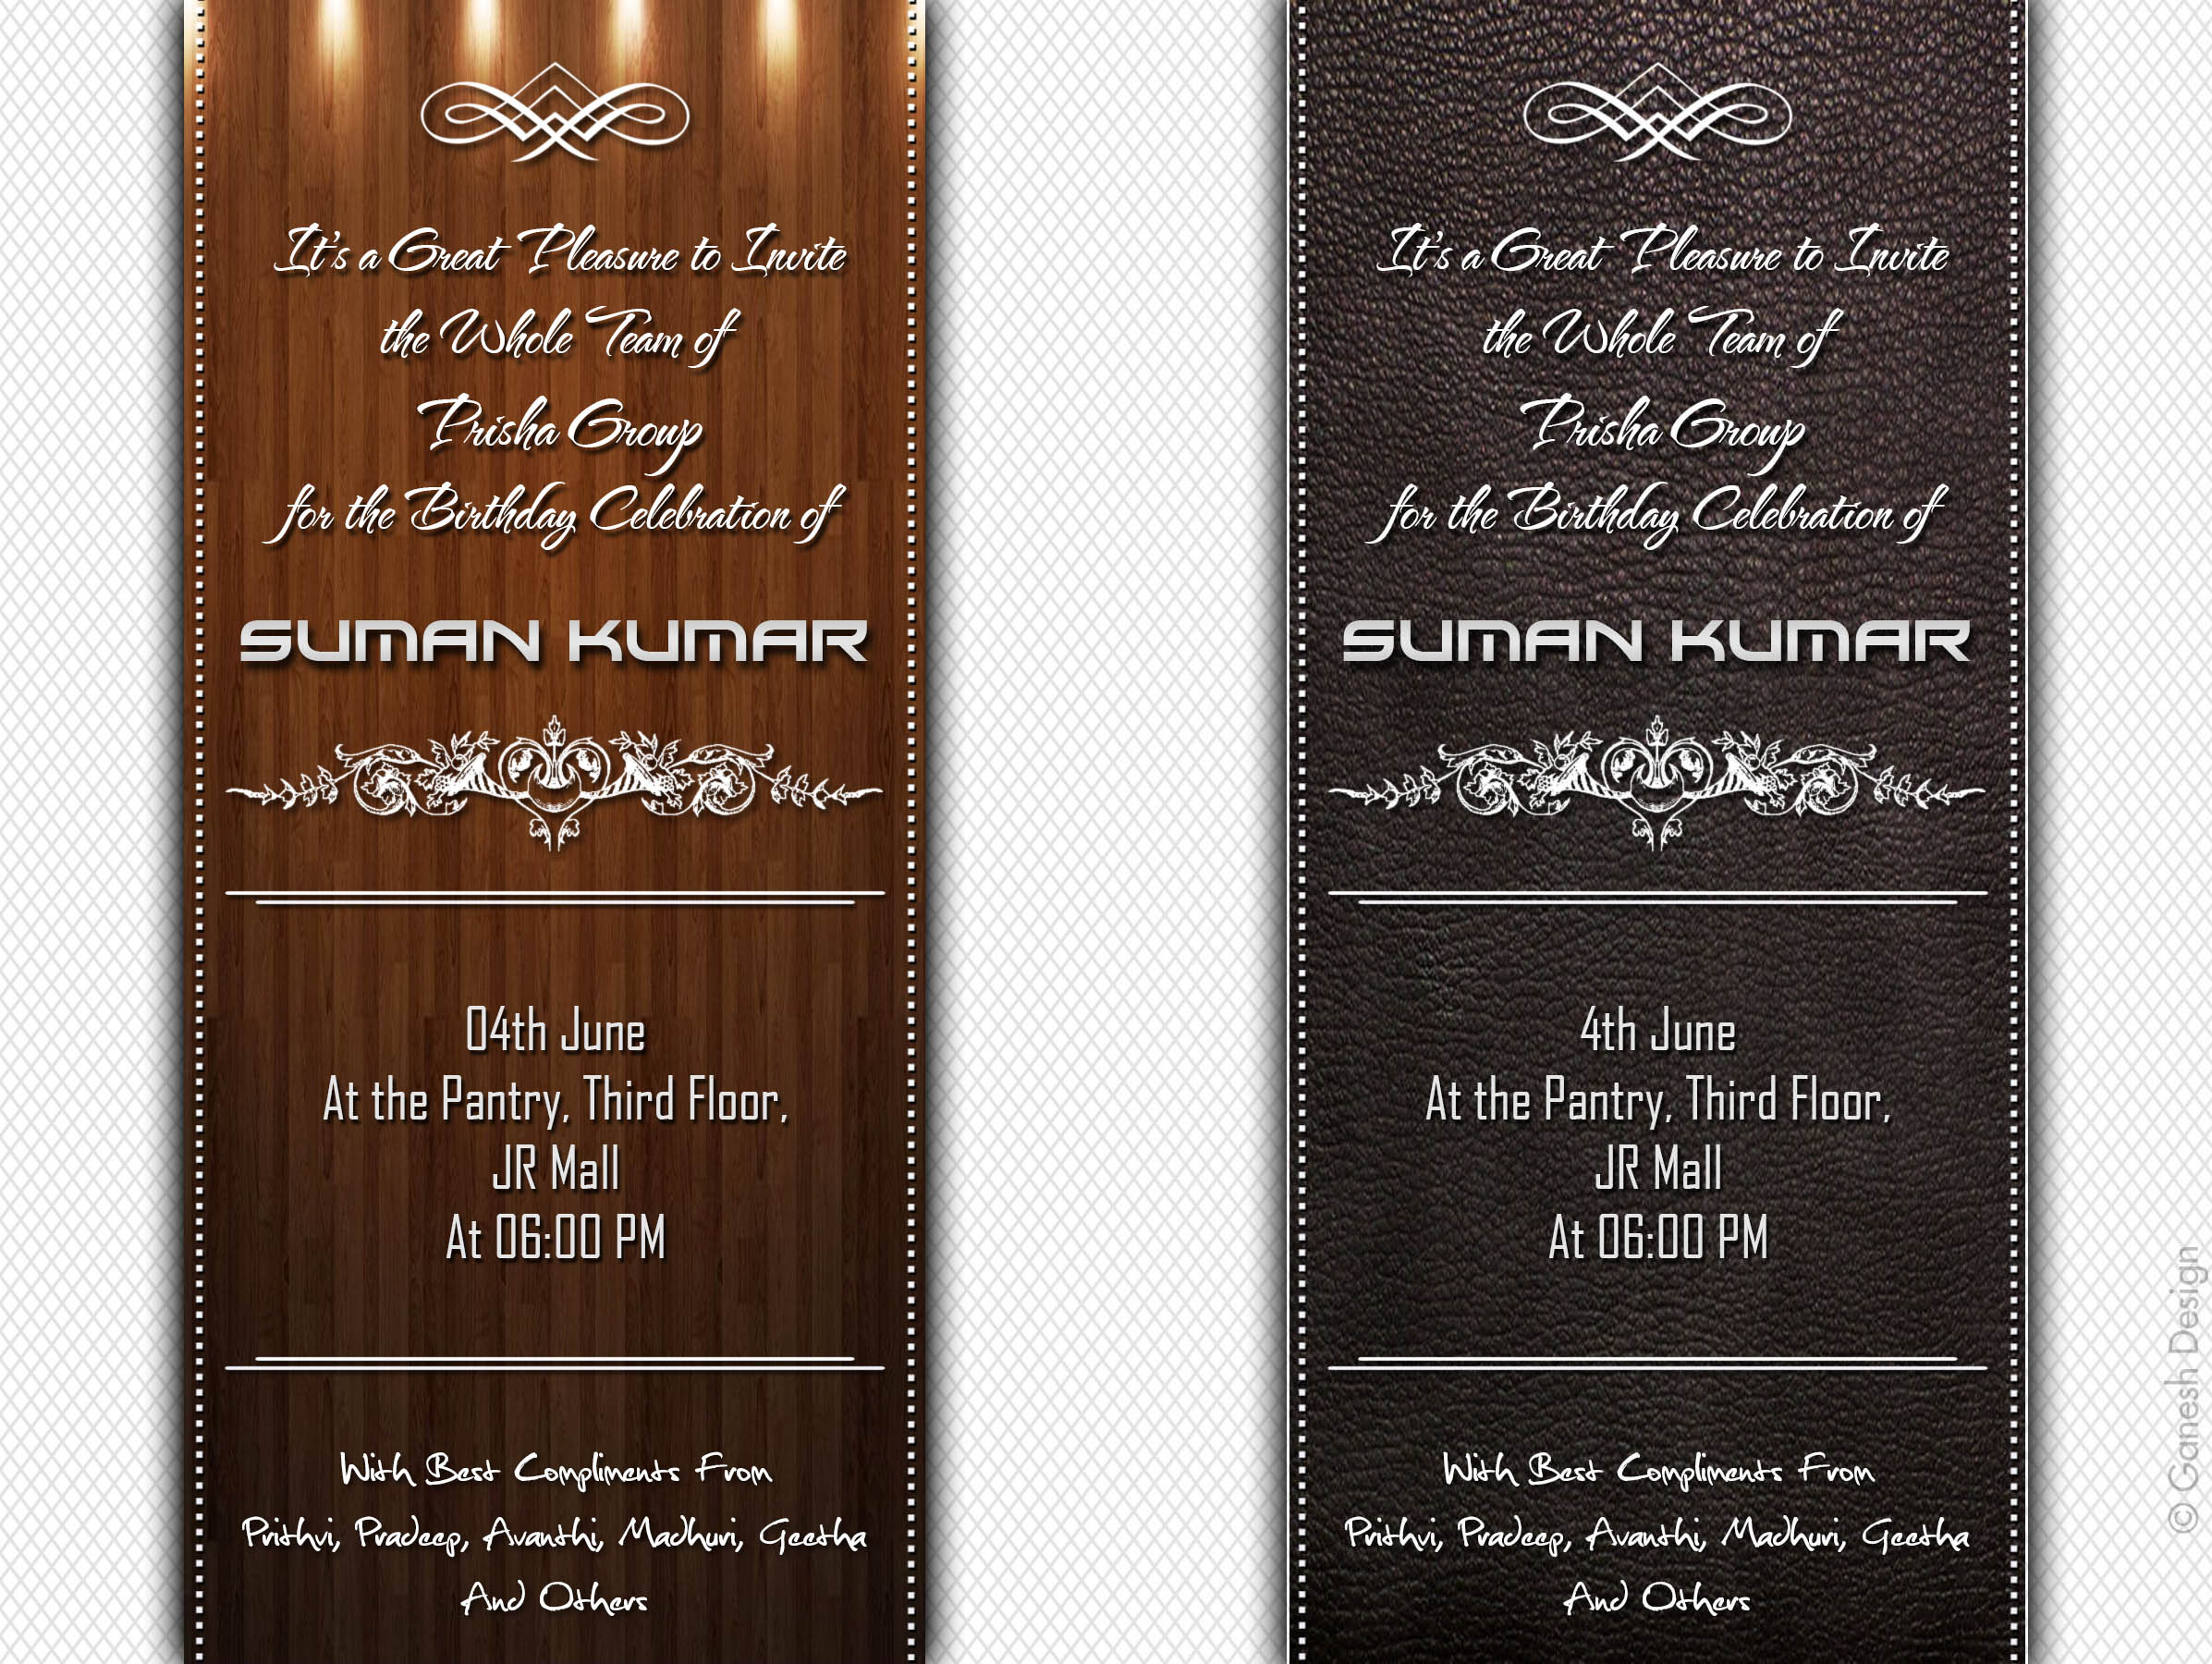 Birthday Party Invitation PSD Template by Ganeshkmr21 on DeviantArt – Office Party Invitation Templates